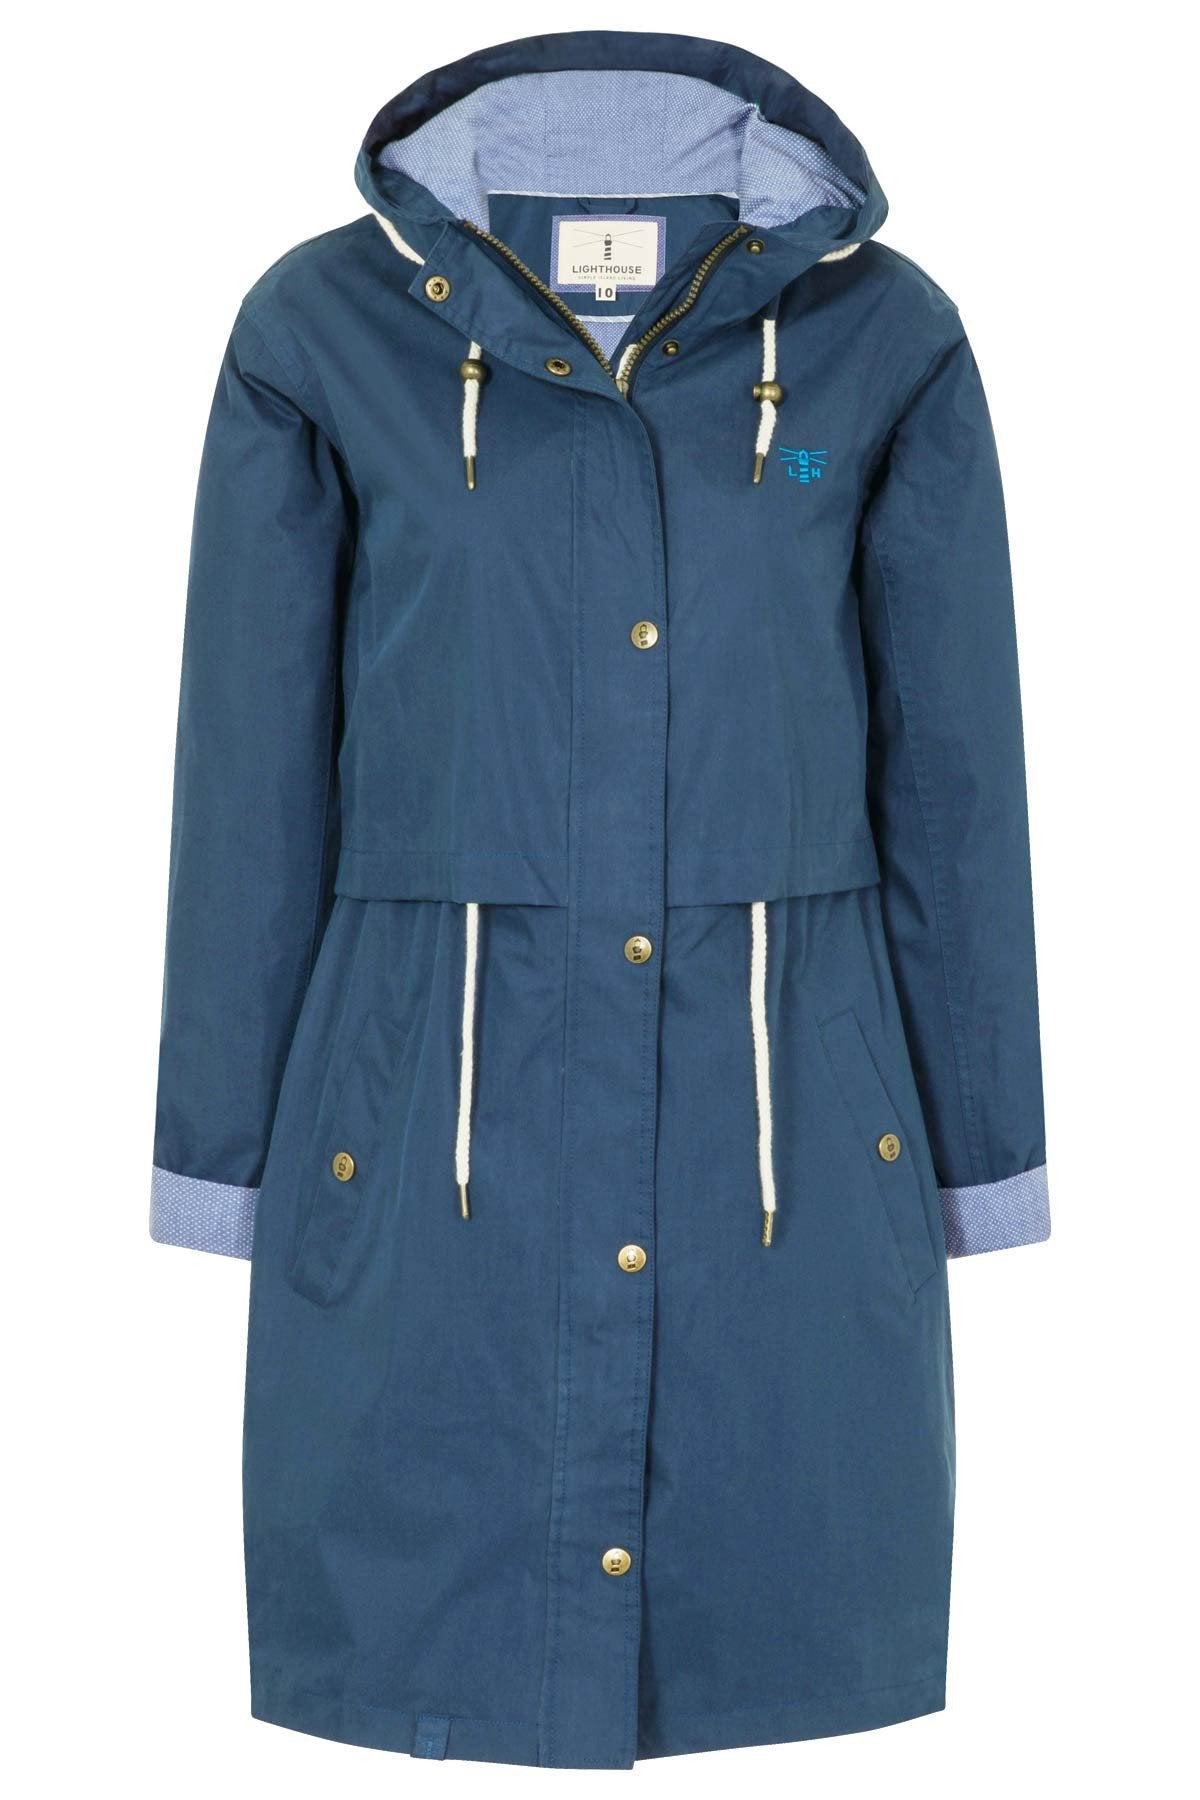 Lighthouse women's Rayna parka - mannequin image